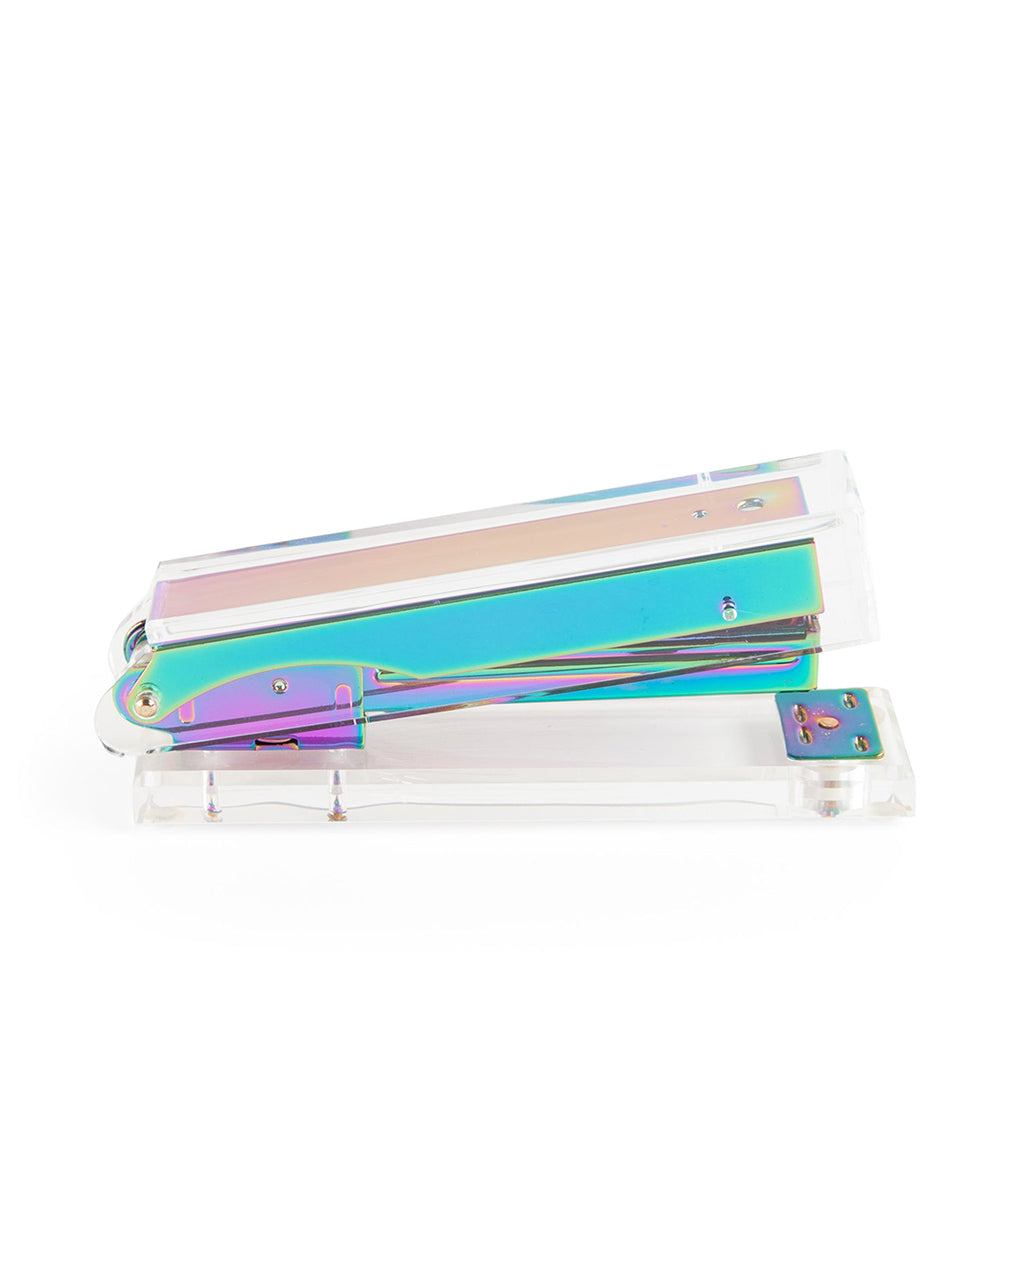 Iridescent metal hardware shines through clear body.